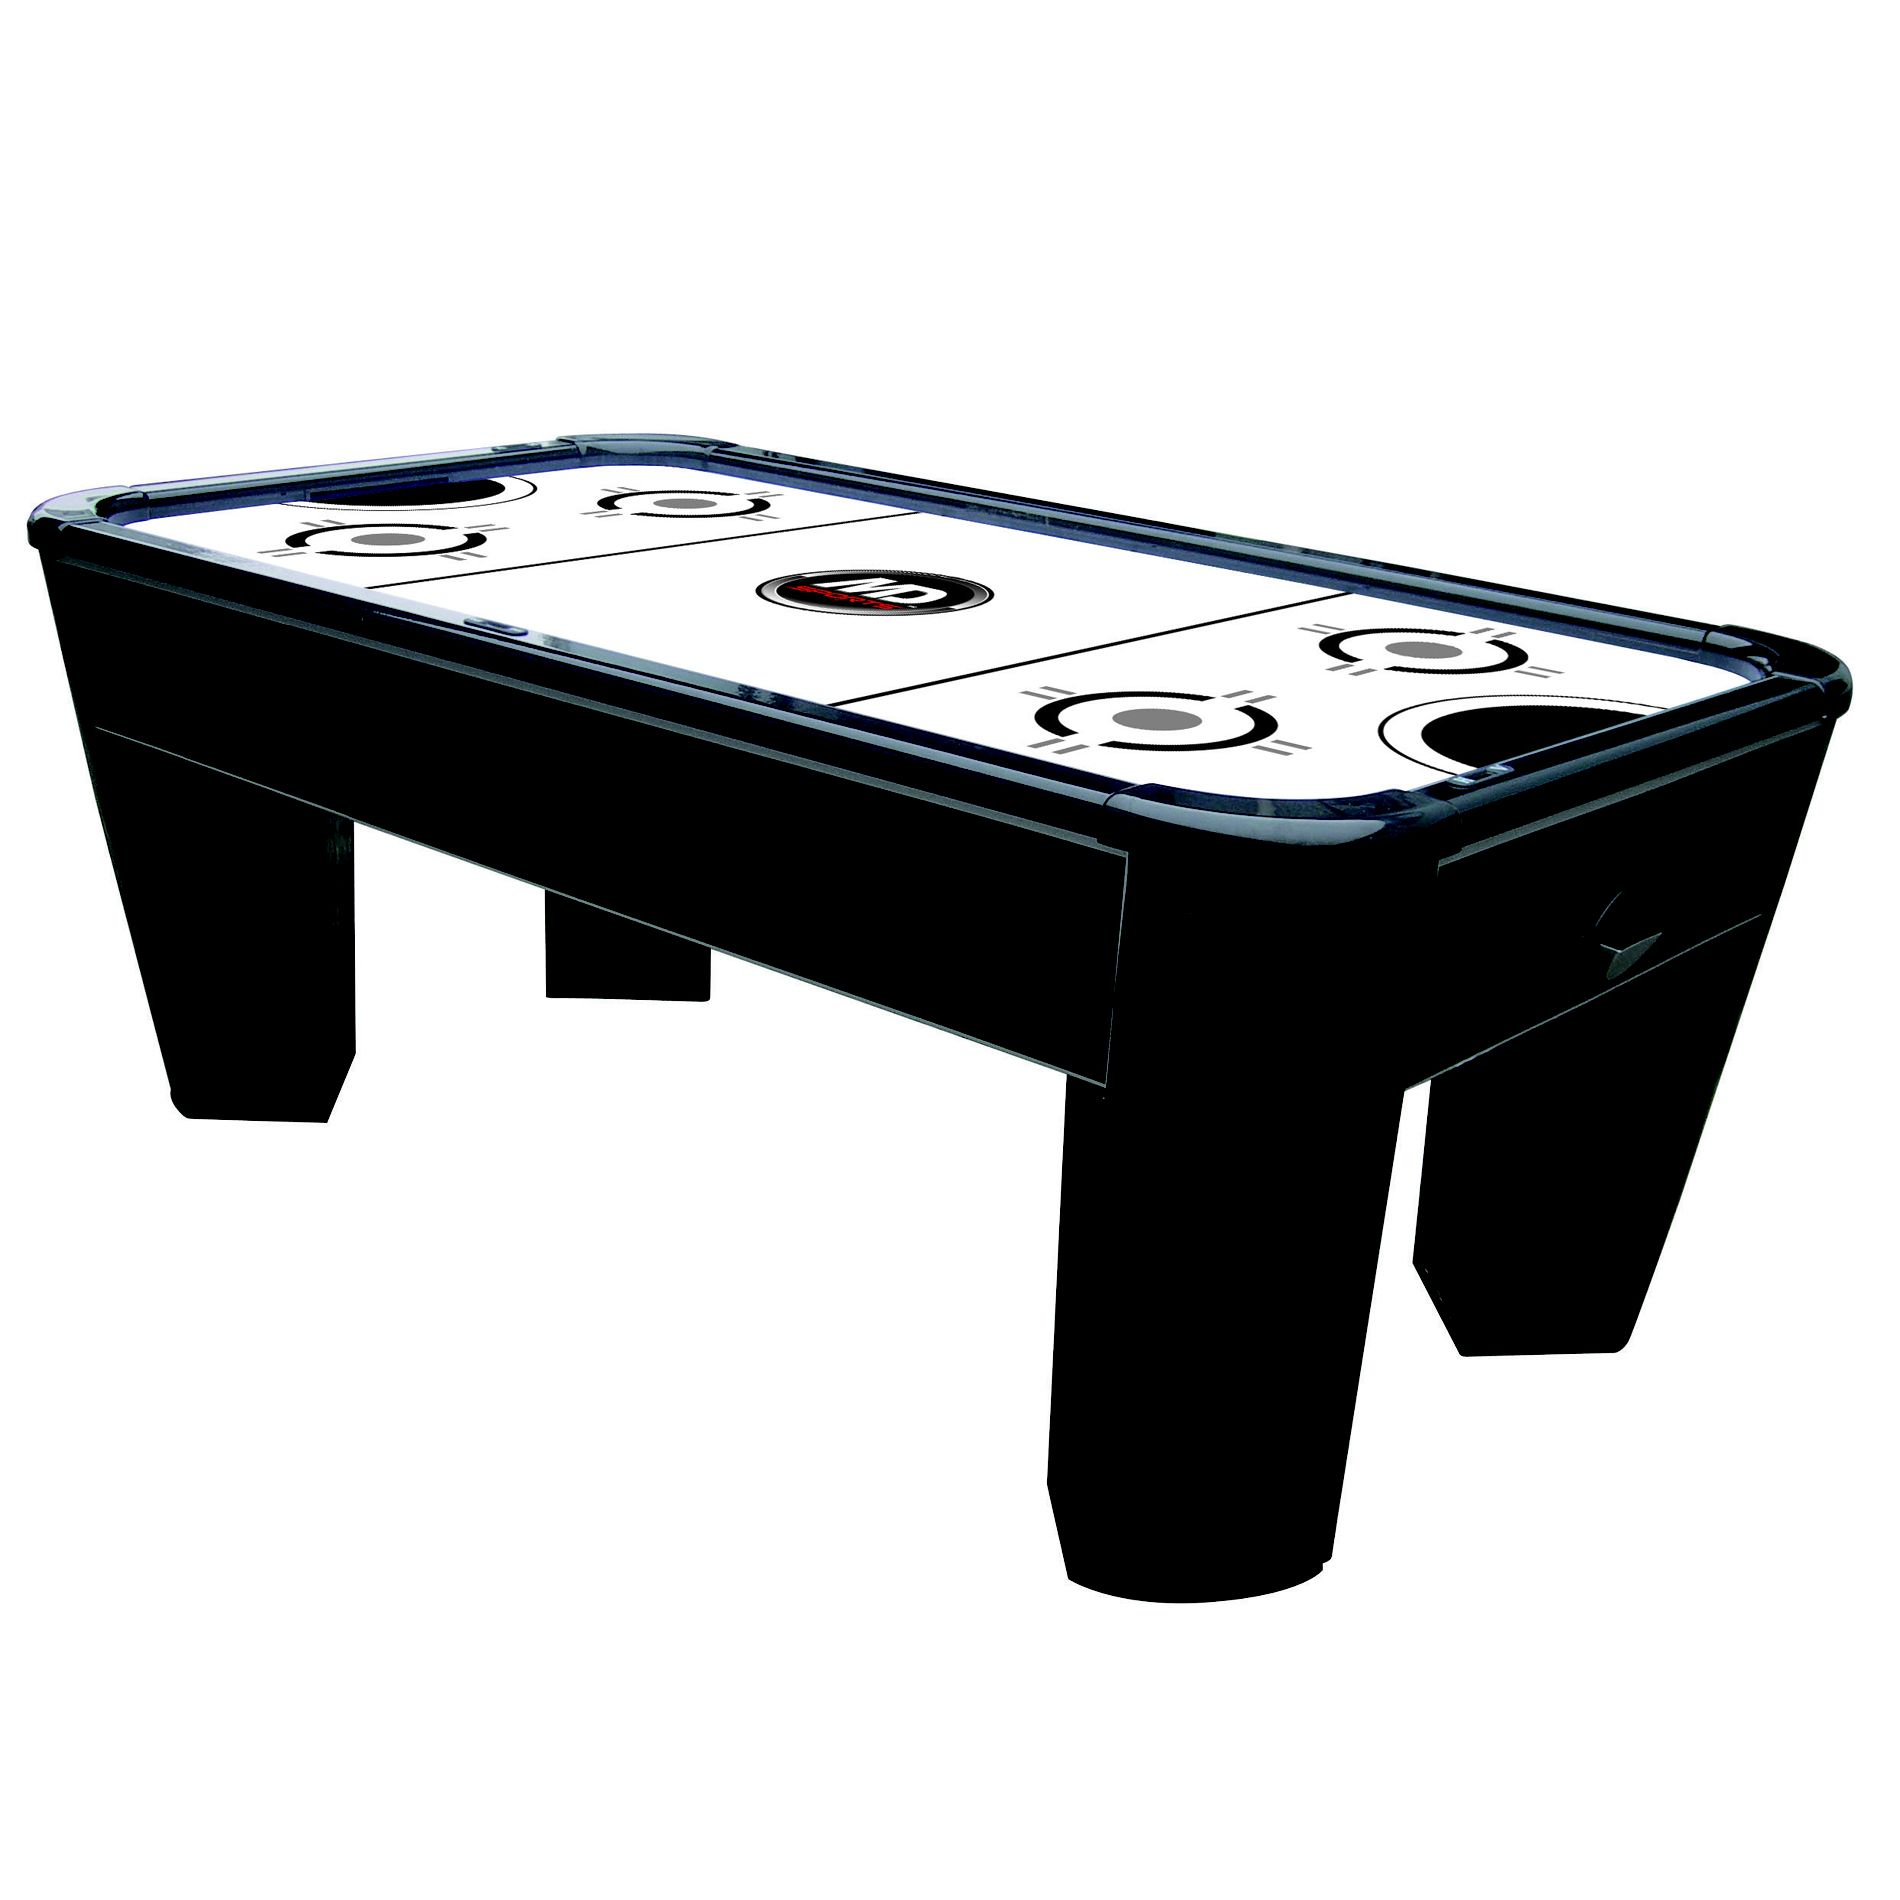 MD Sports 7ft Power Play Air Powered Hockey Table w/ BONUS Electronic Dartboard/Cabinet